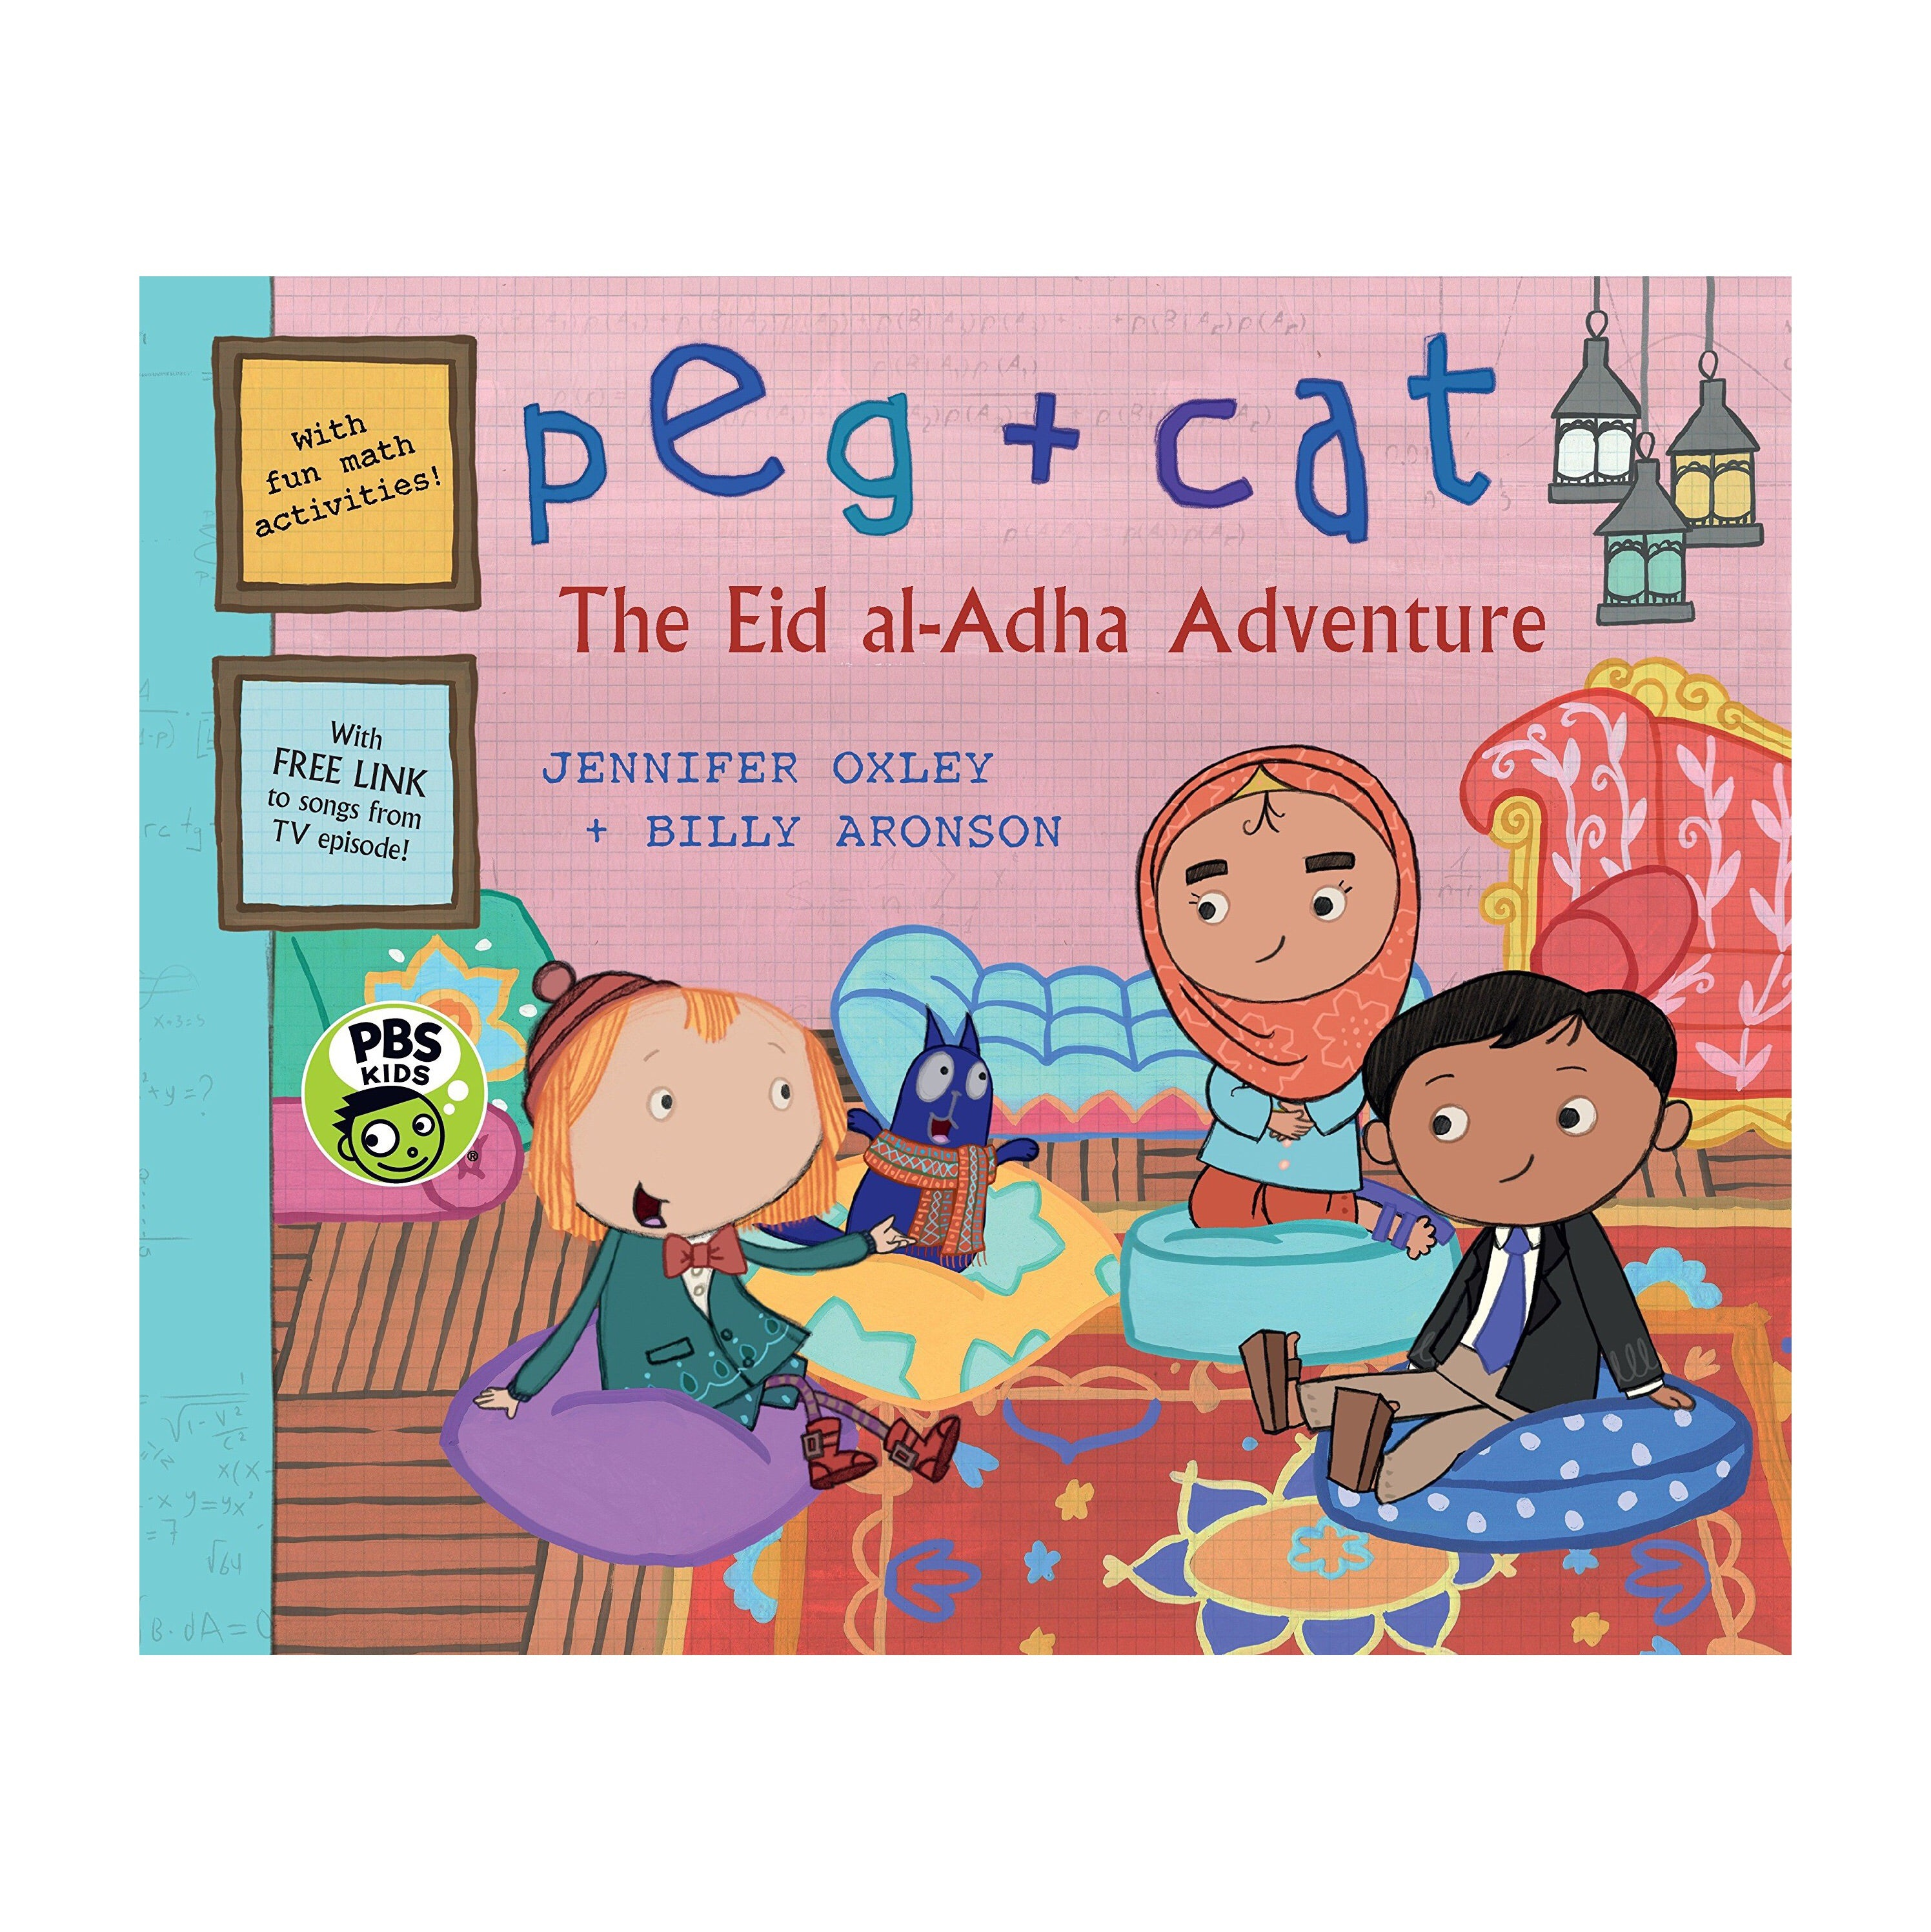 Peg + Cat: The Eid al-Adha Adventure